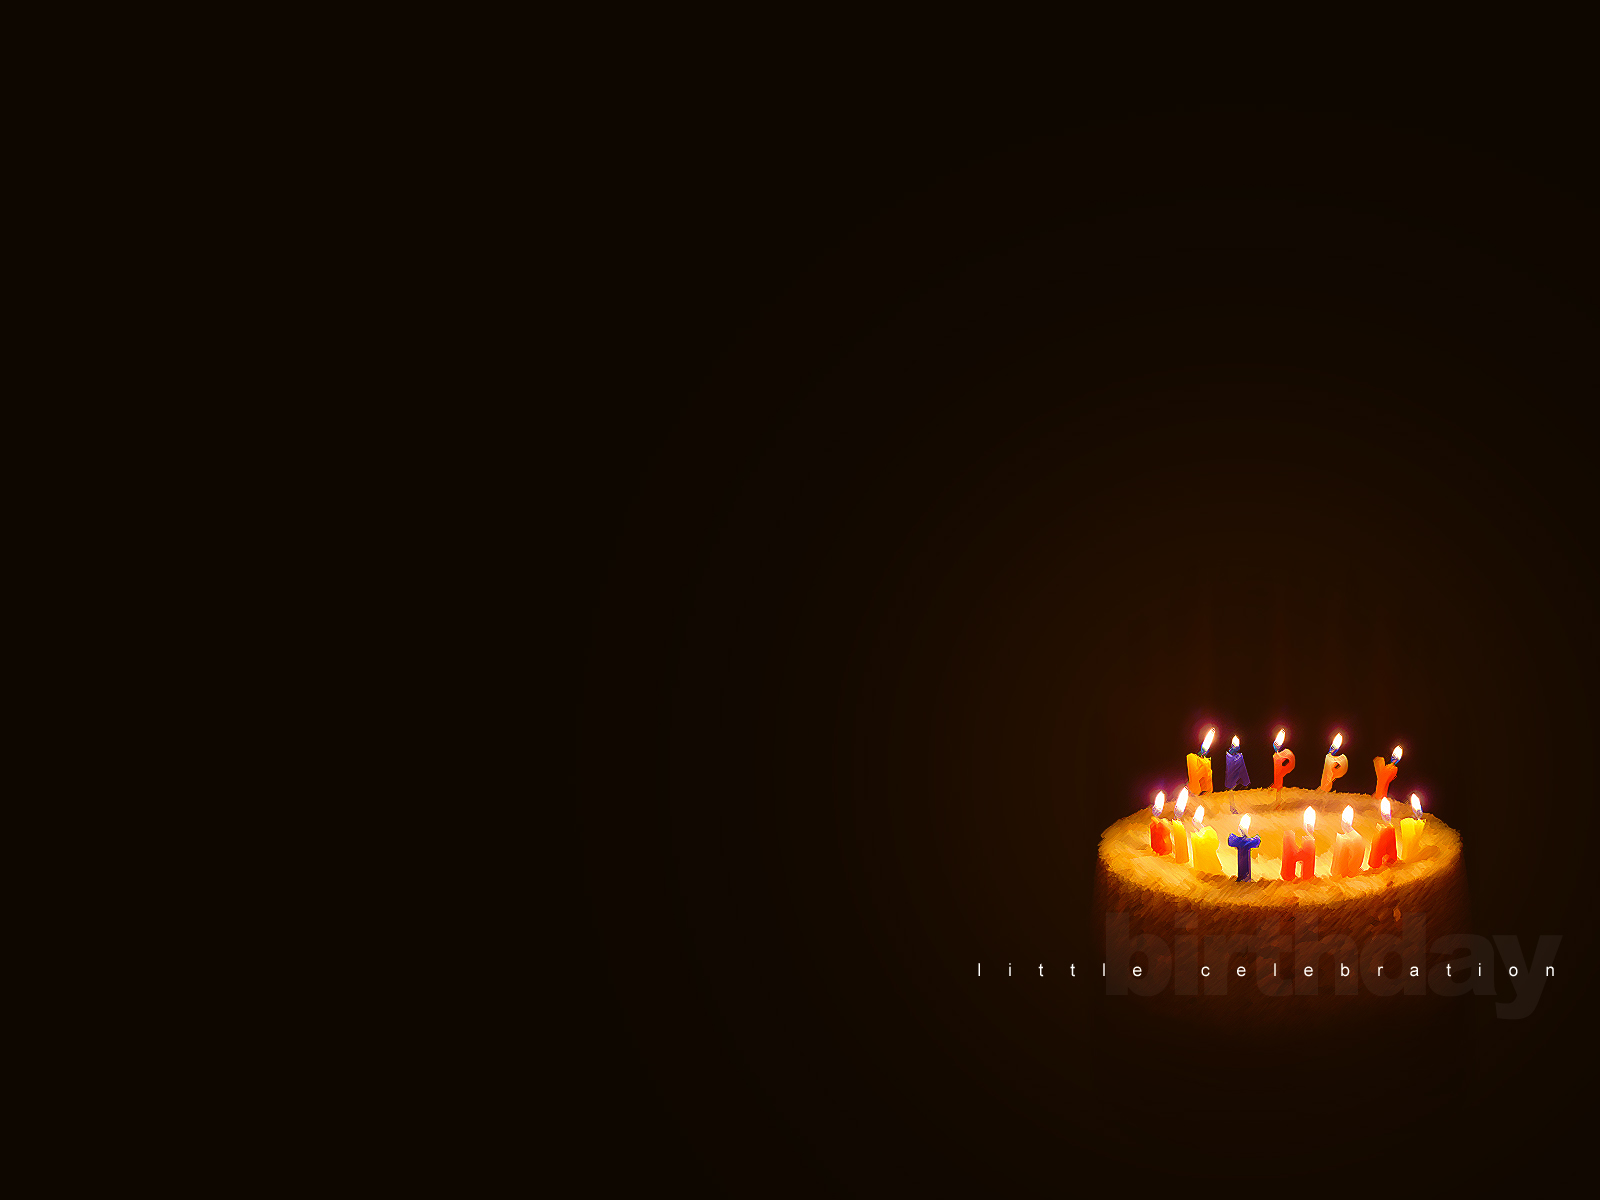 Birthday free for projects hq free download 393 seek gif birthday free for projects toneelgroepblik Image collections